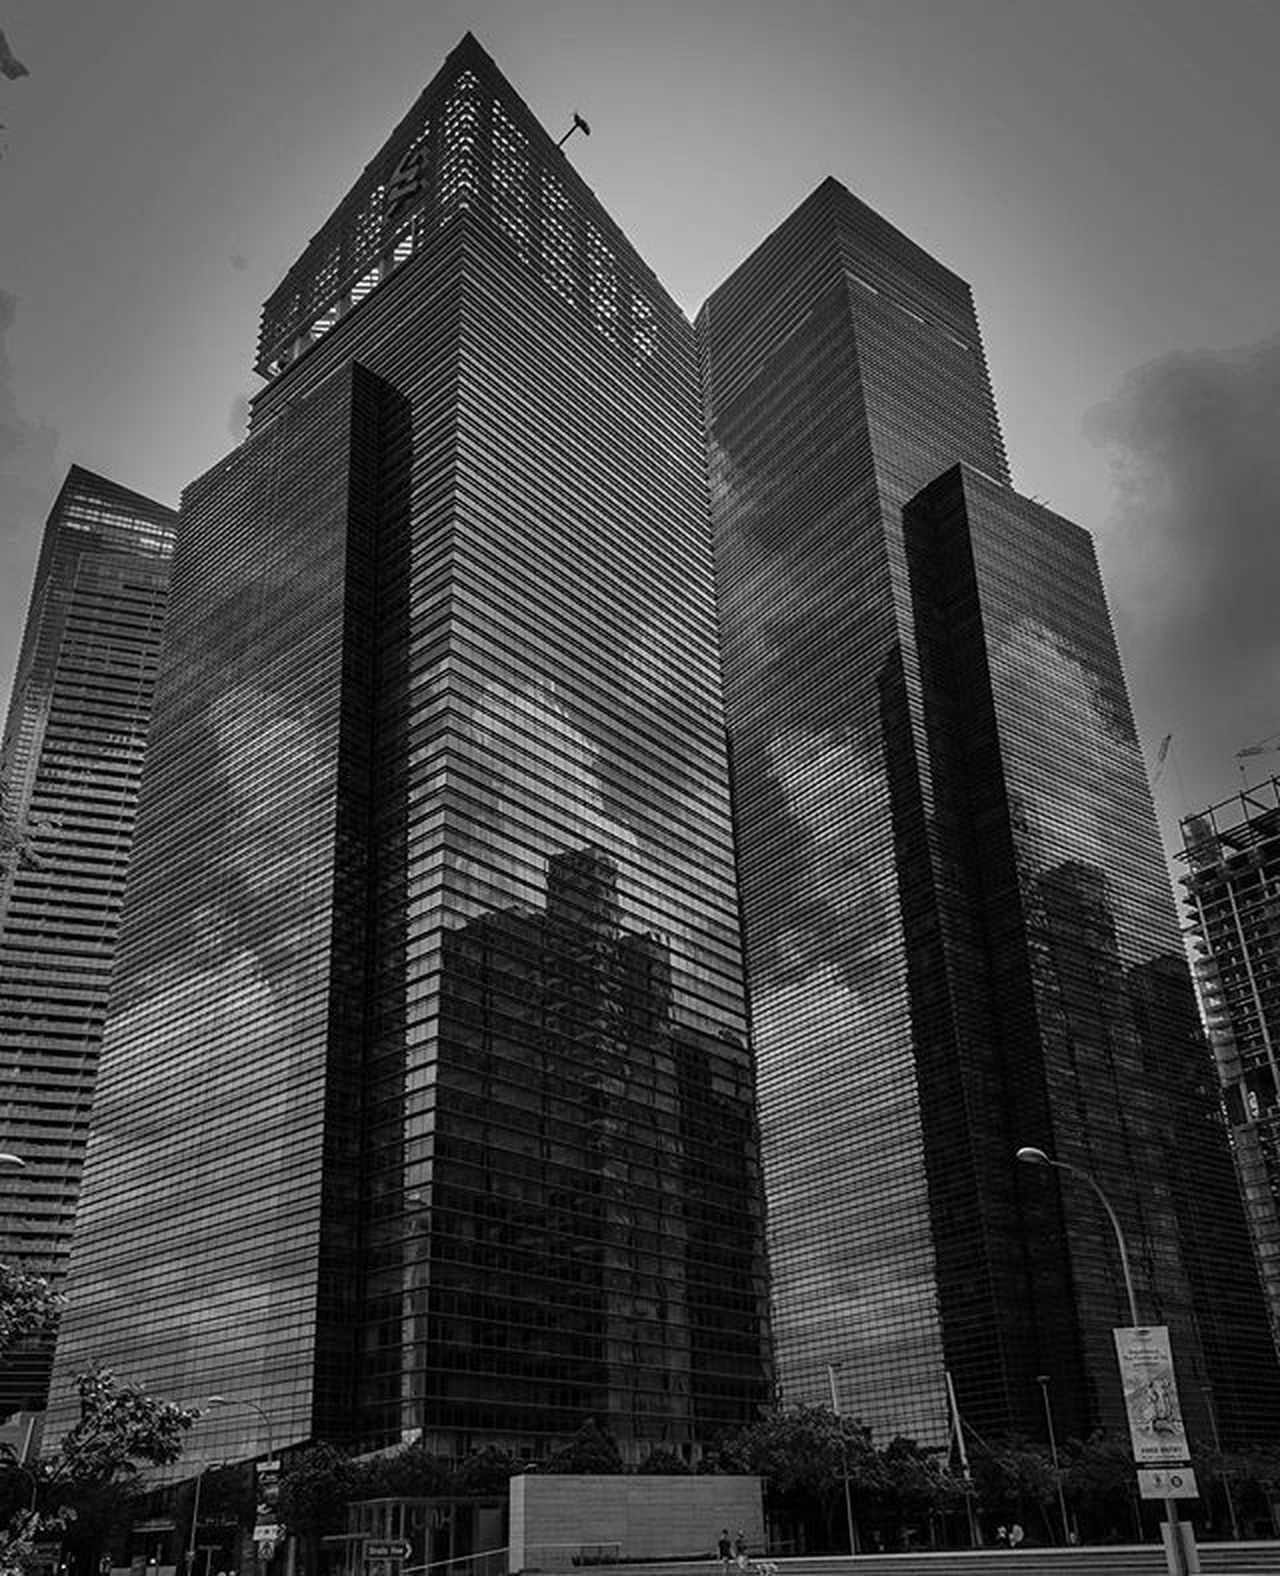 Love how the clouds reflected on the building's in this shot Cbdsingapore Singapore ASIA Nature Cityscapes Photooftheday Skyline Blackandwhitephoto InstaTags4Likes Instagram Sonyrx100iv